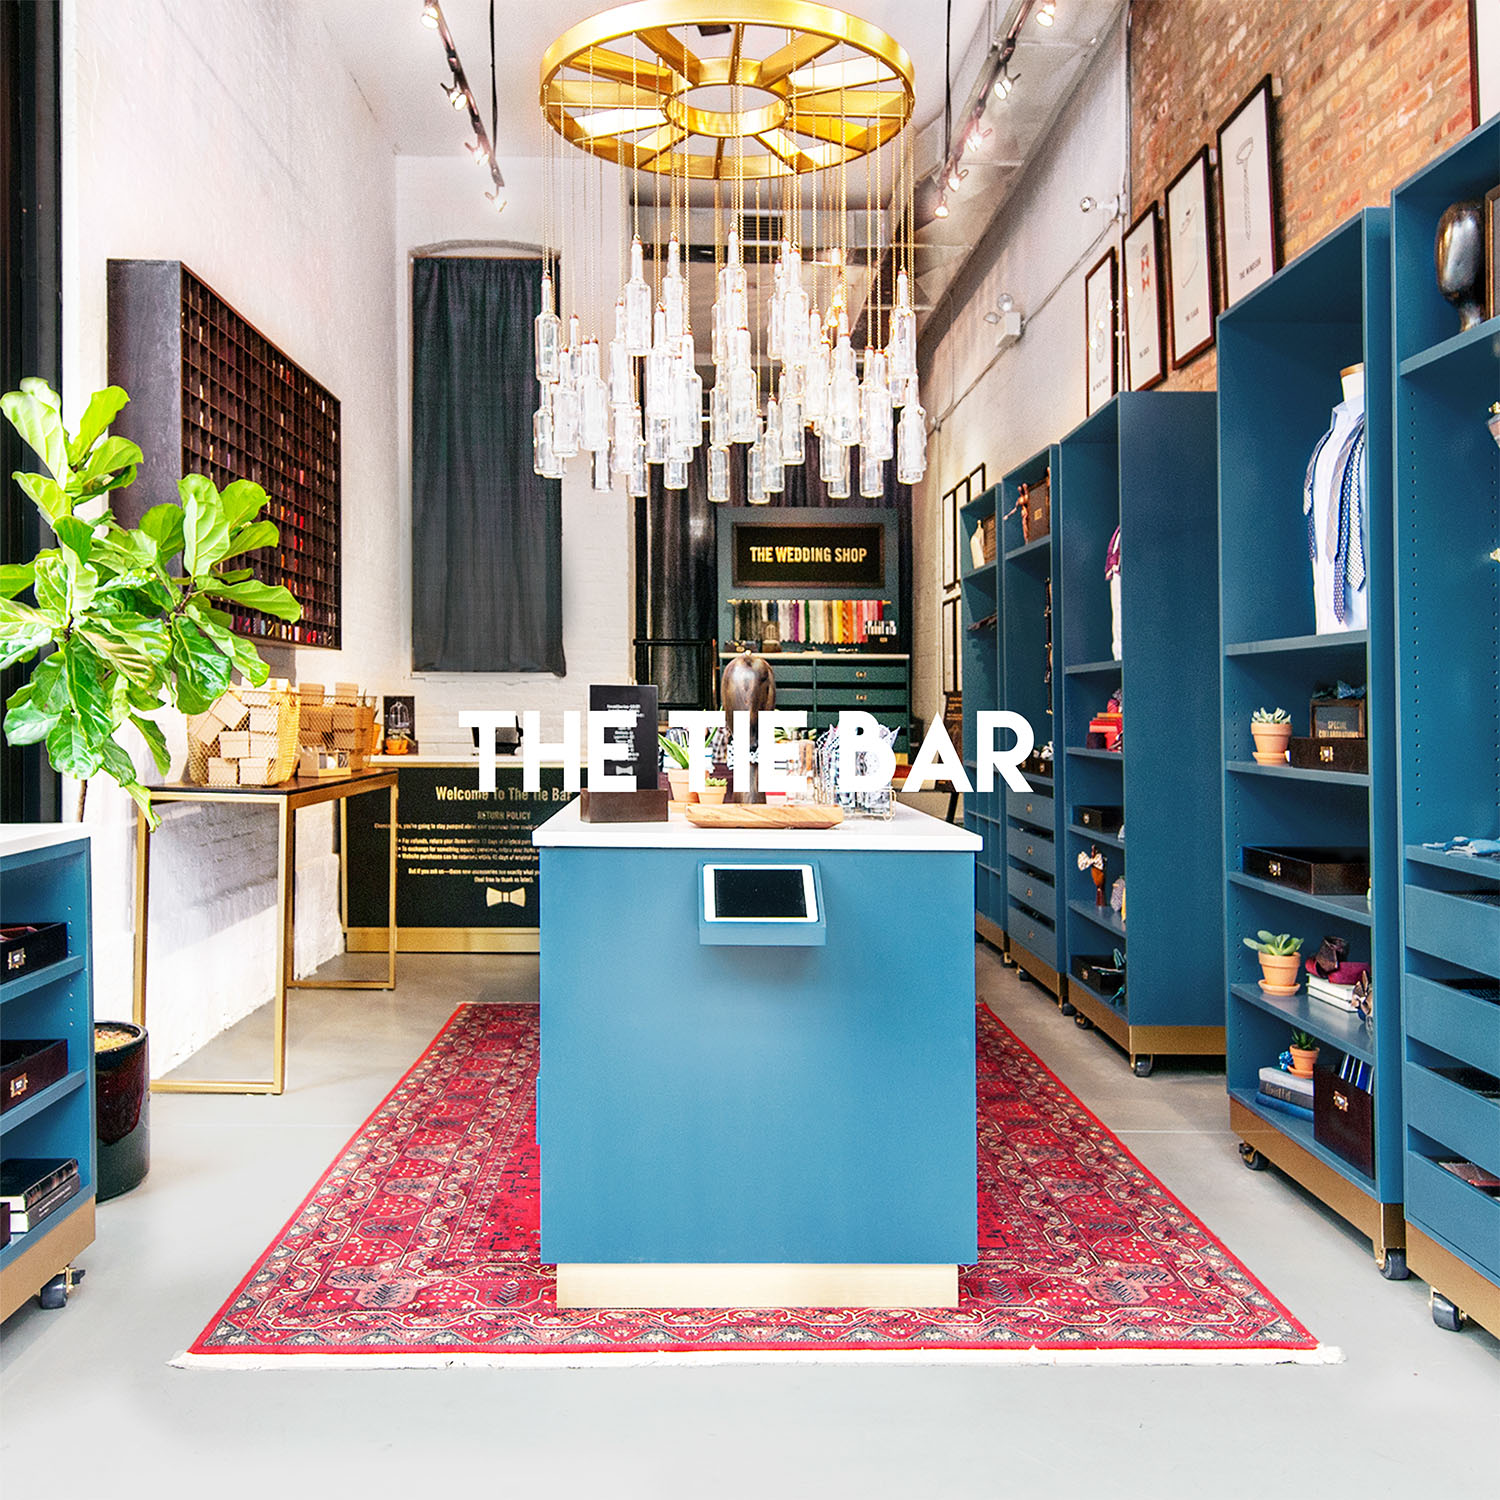 The Tie Bar in New York, NY | Retail interior design project by Gala Magriña Design